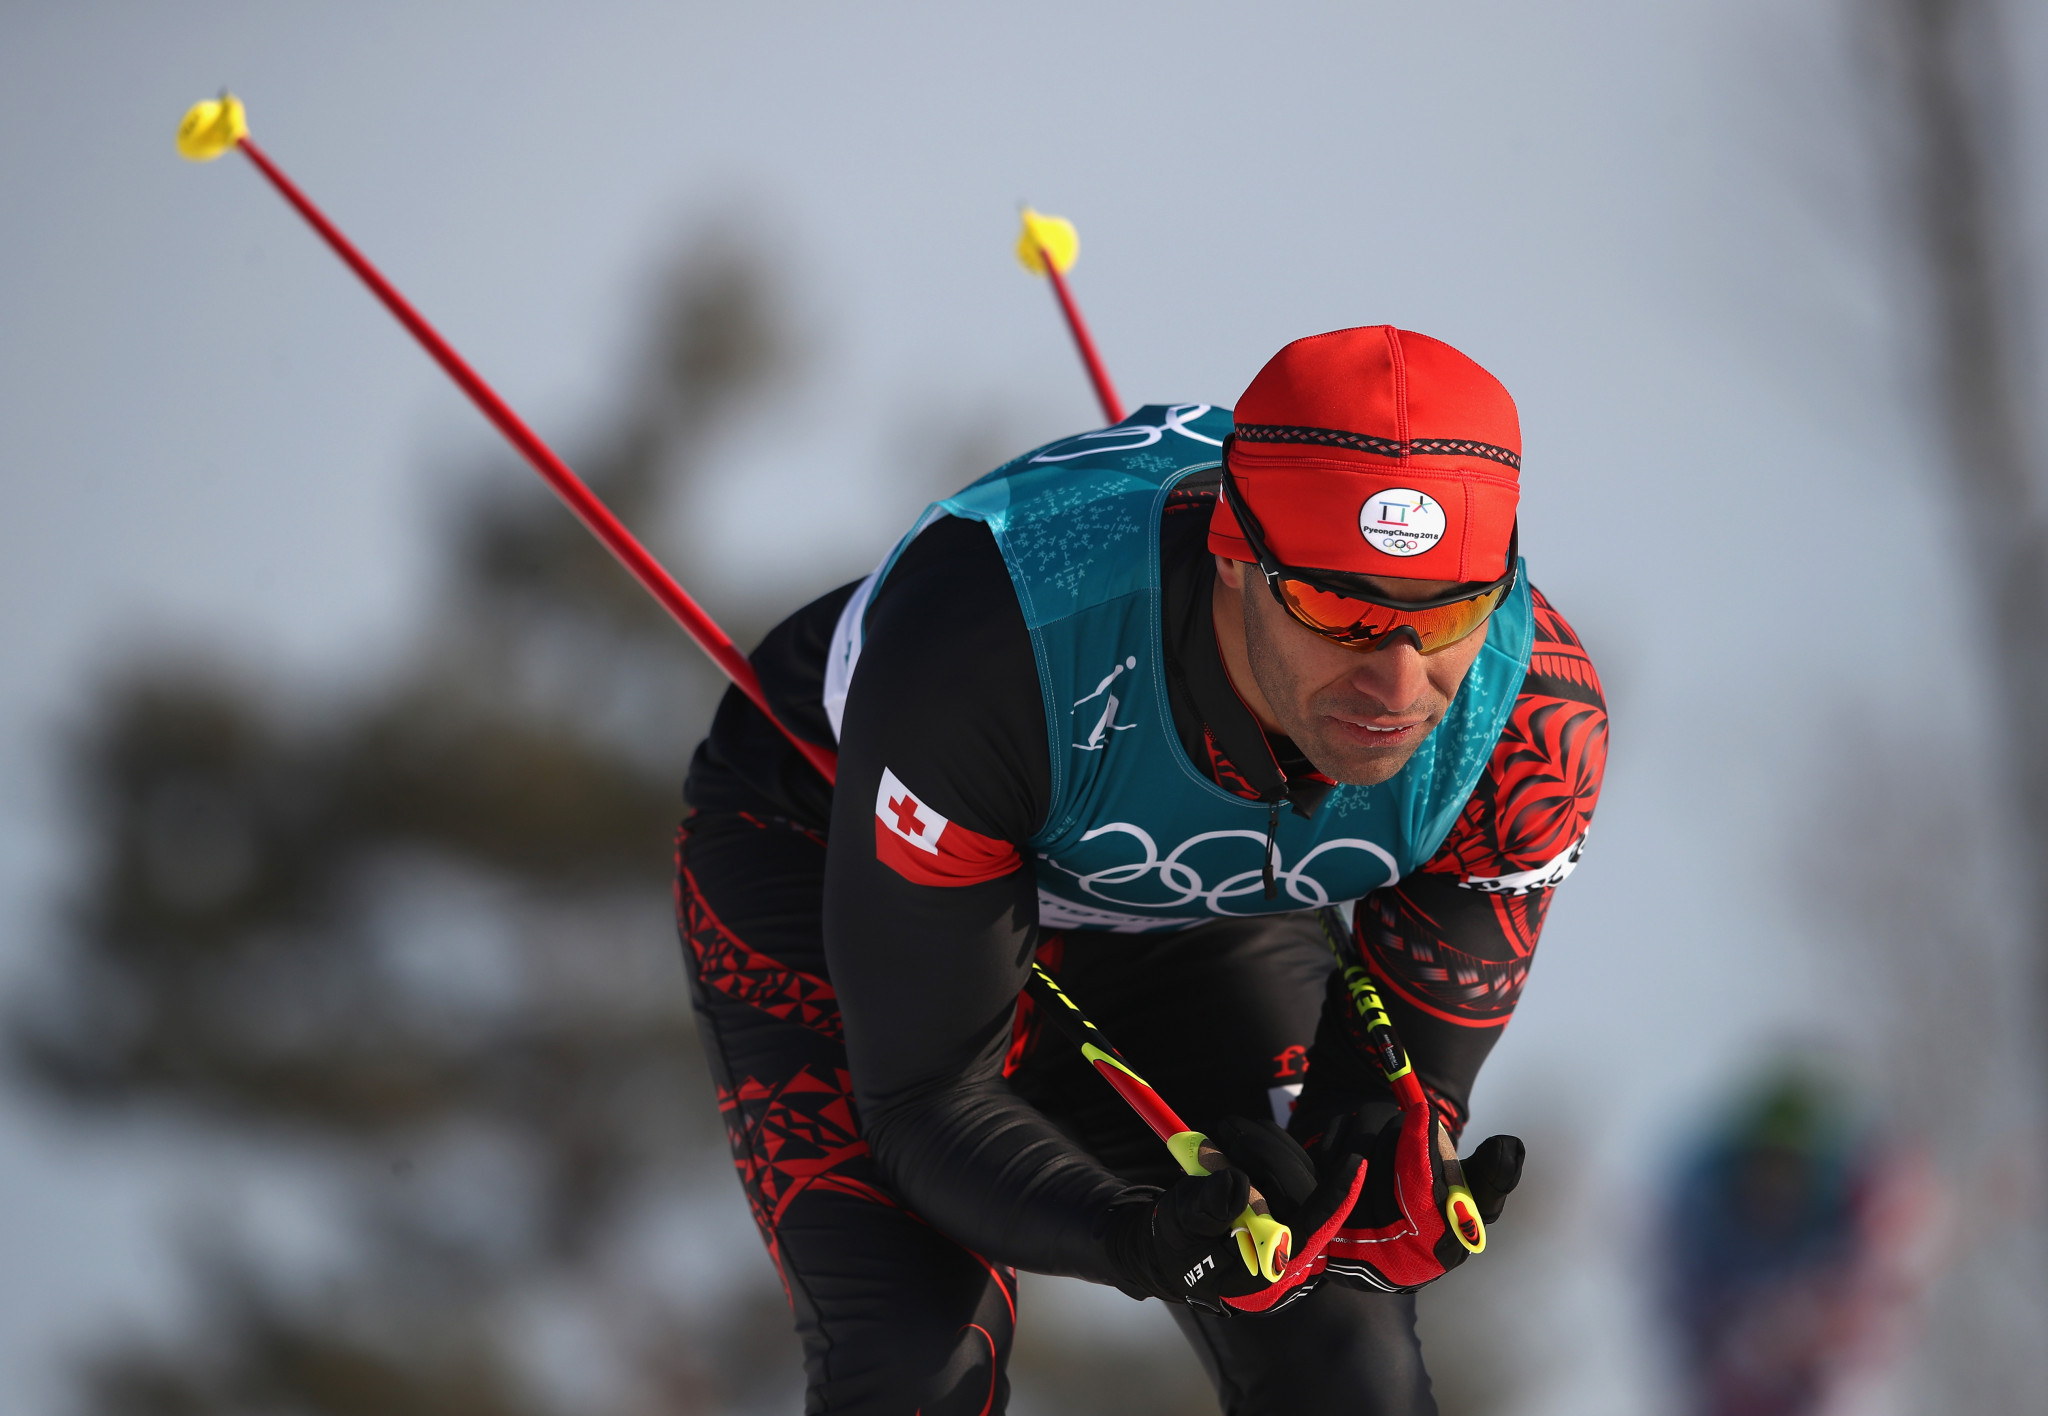 Pita Taufatofua is competing in the cross-country skiing event at Pyeongchang 2018 ©Getty Images